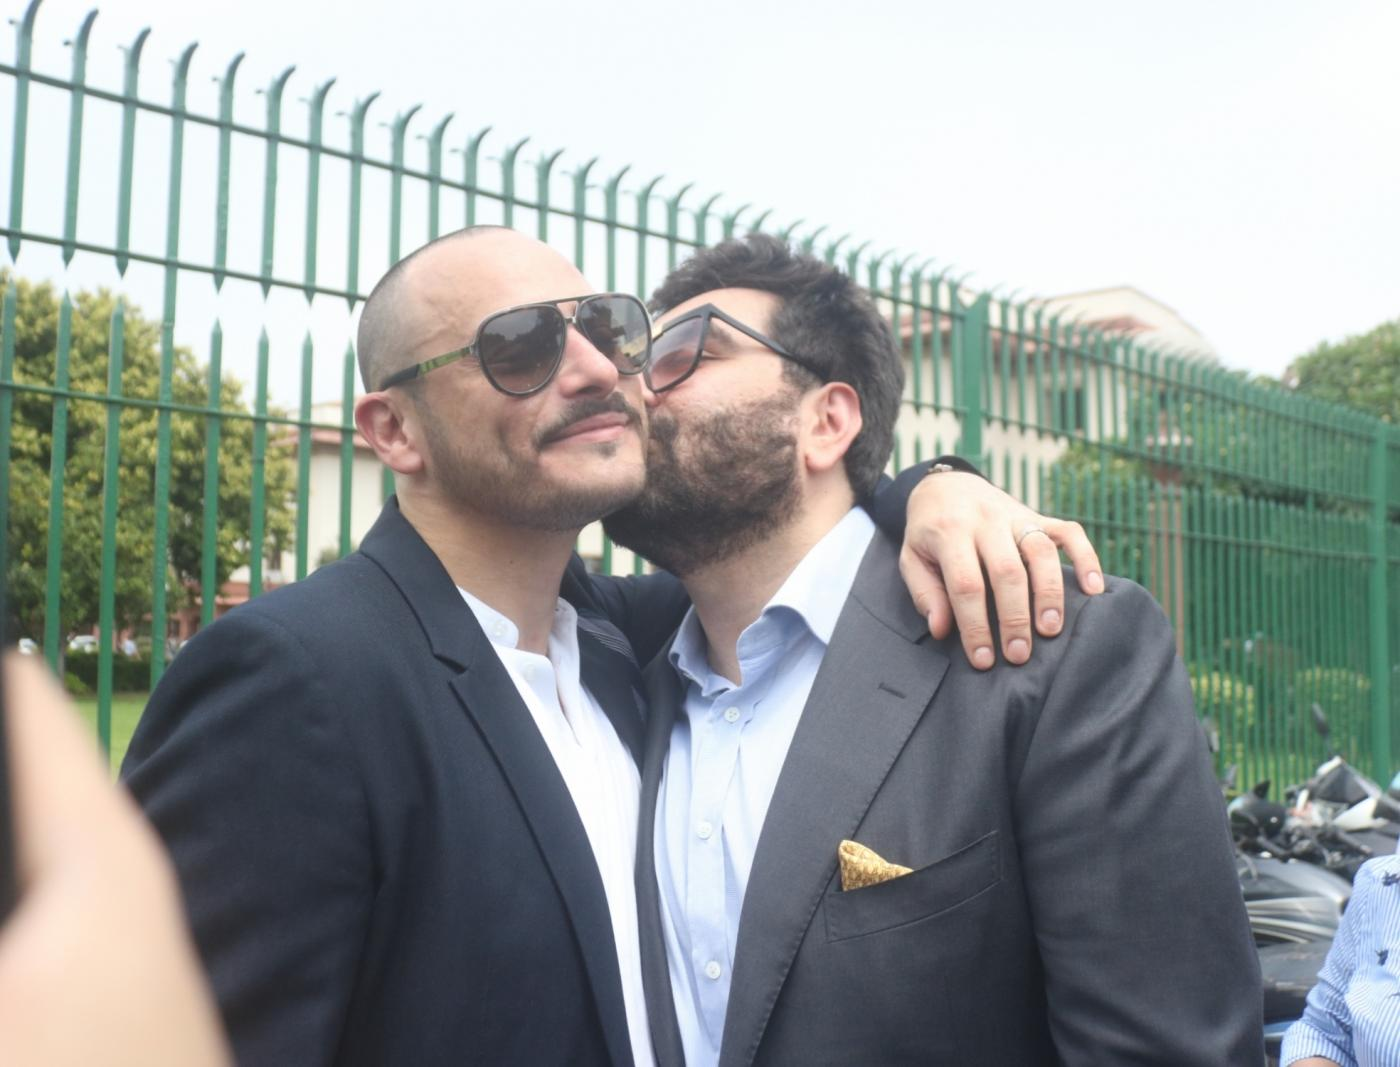 """New Delhi: Hotelier and Section 377 crusader Keshav Suri celebrates after the Supreme Court in a landmark decision decriminalised homosexuality by declaring Section 377, the penal provision which criminalised gay sex, as """"manifestly arbitrary""""; in New Delhi on Sept 6, 2018. The top court delivering separate but concurring judgments, said it is the constitutional and not social morality which will prevail. The verdict sparked celebrations amongst the LGBTIQ (lesbian, gay, bisexual, transgender/transsexual, intersex and queer/questioning) community across India. (Photo: IANS) by ."""